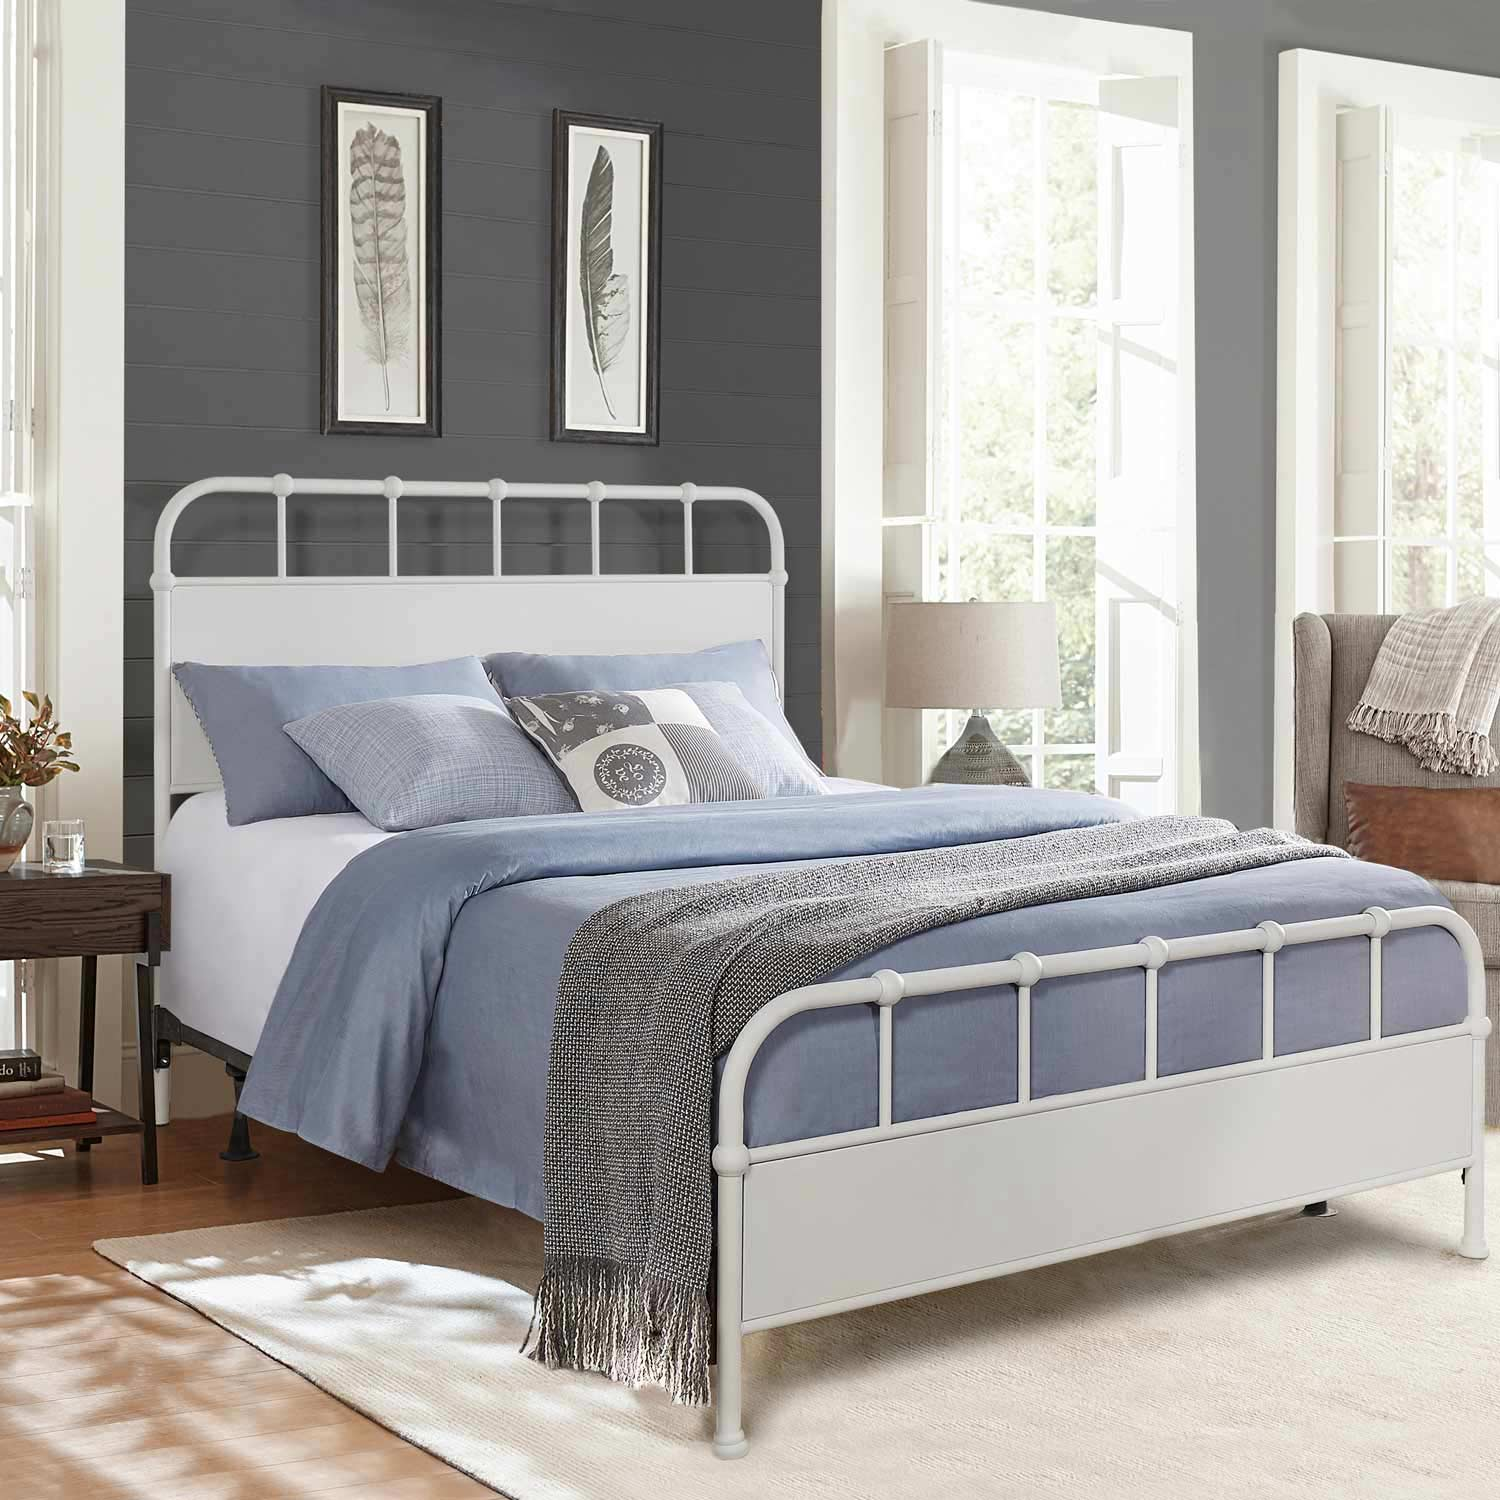 Hillsdale Grayson Metal Bed - Textured White